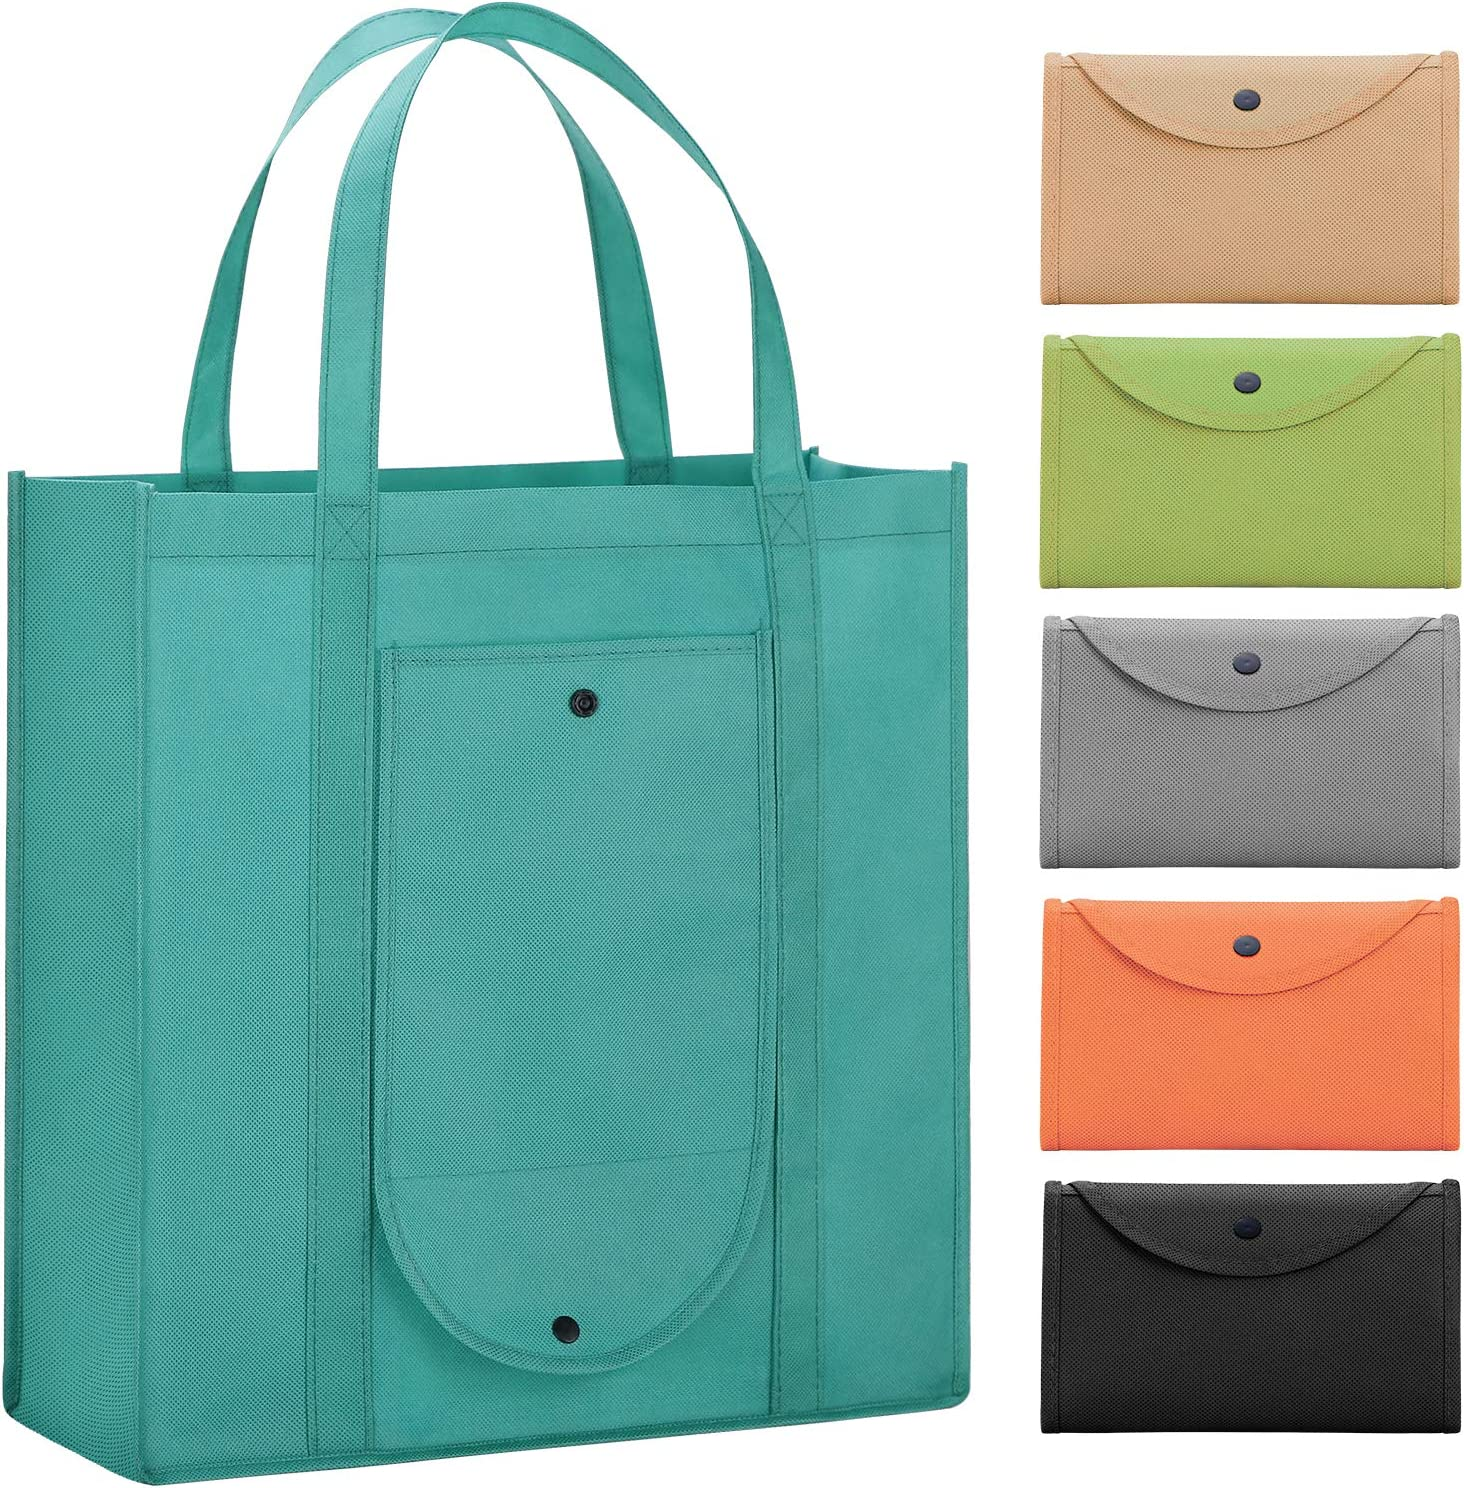 WiseLife Reusable Grocery Bags San Diego Mall Set of B Pack 6 Very popular! Shopping Large